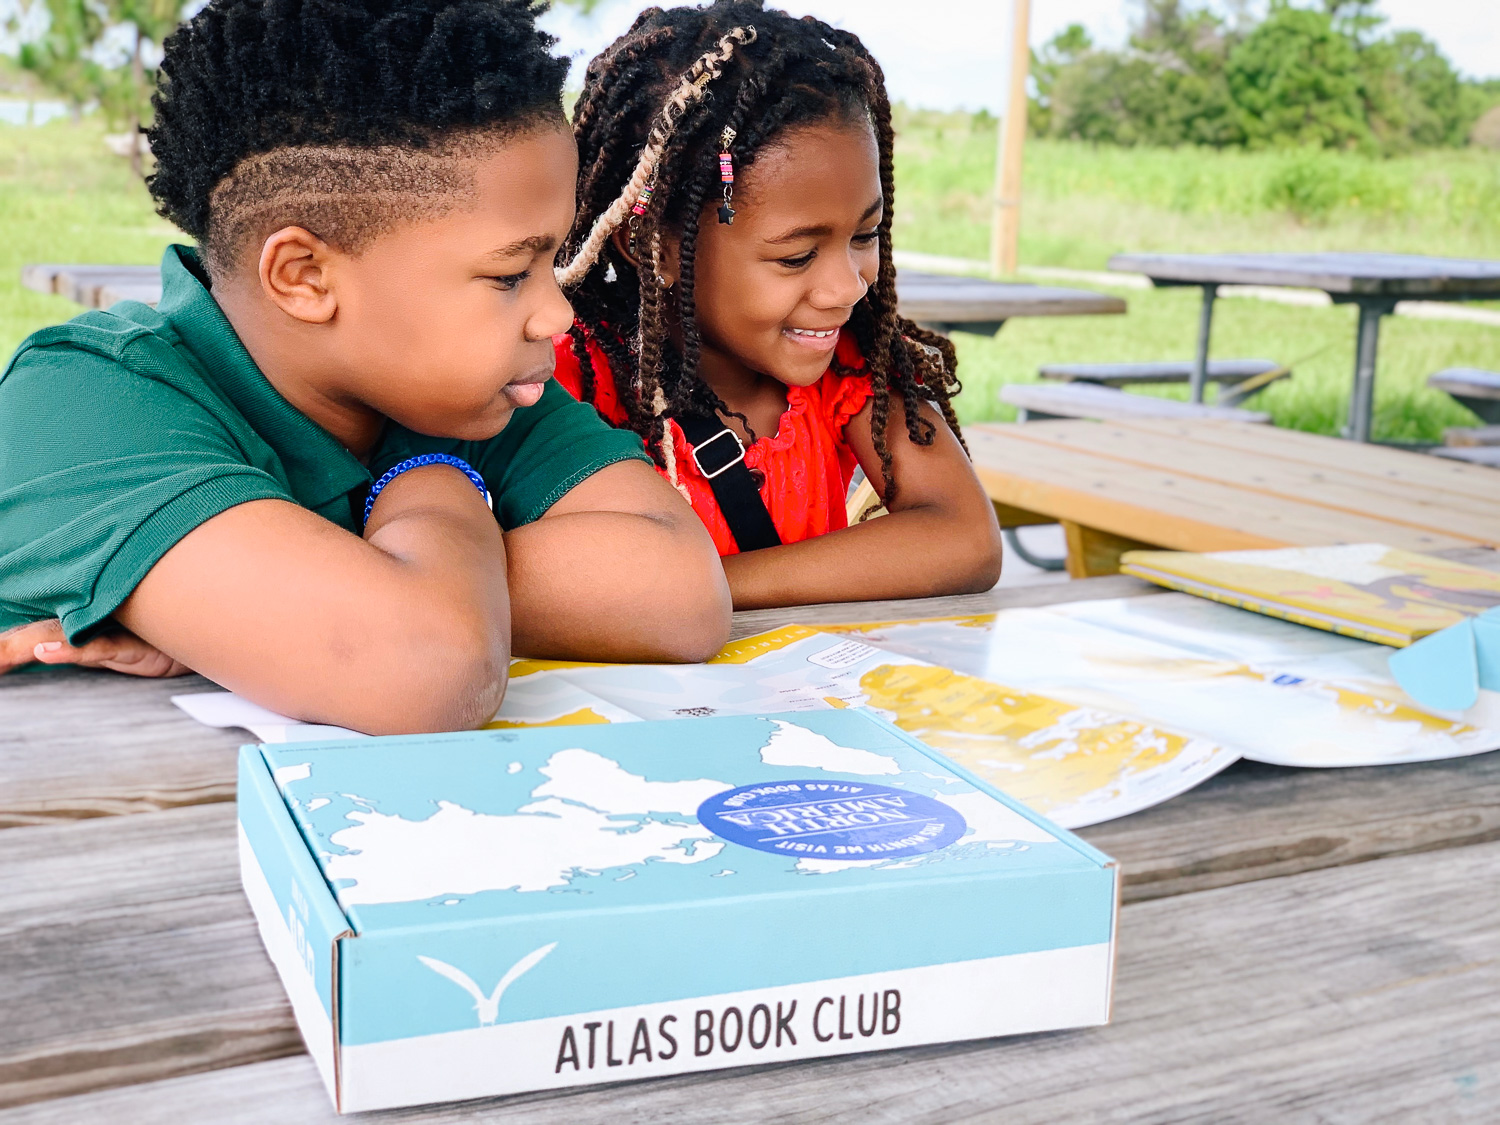 Learn about the world and other cultures through Atlas Book Club and their diverse children's books.